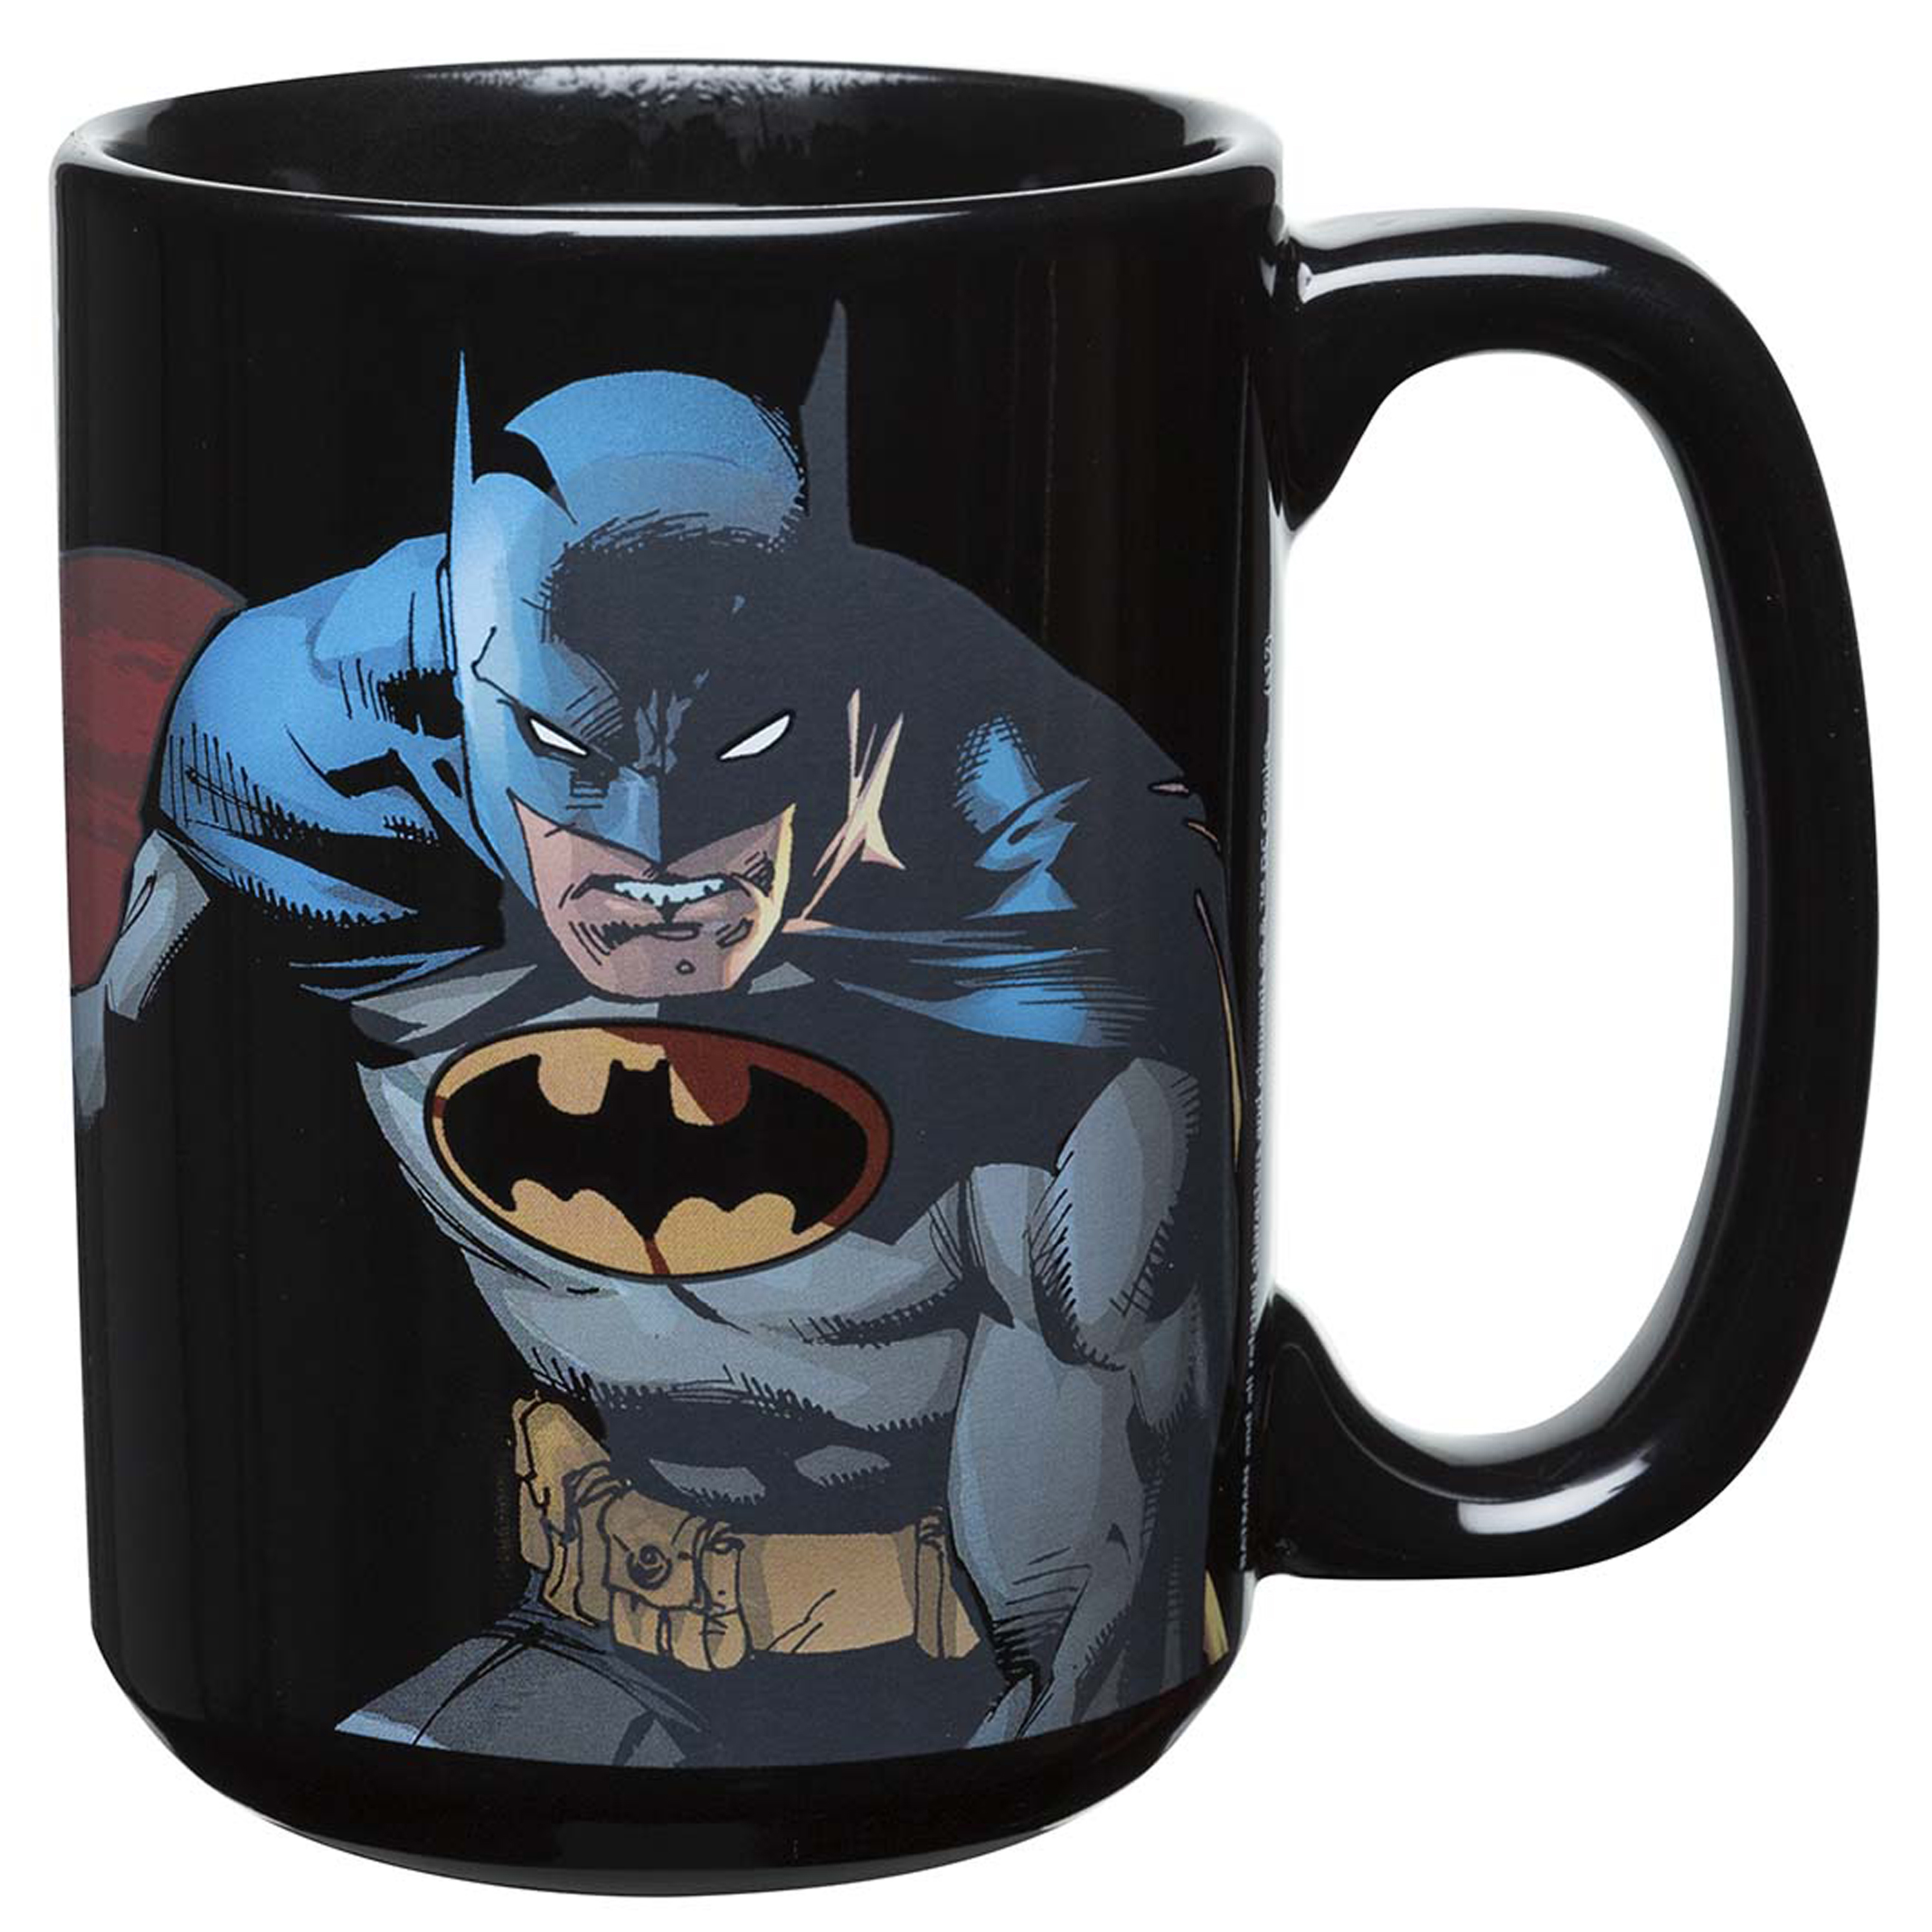 DC Comics 15 oz. Coffee Mug, Batman slideshow image 3